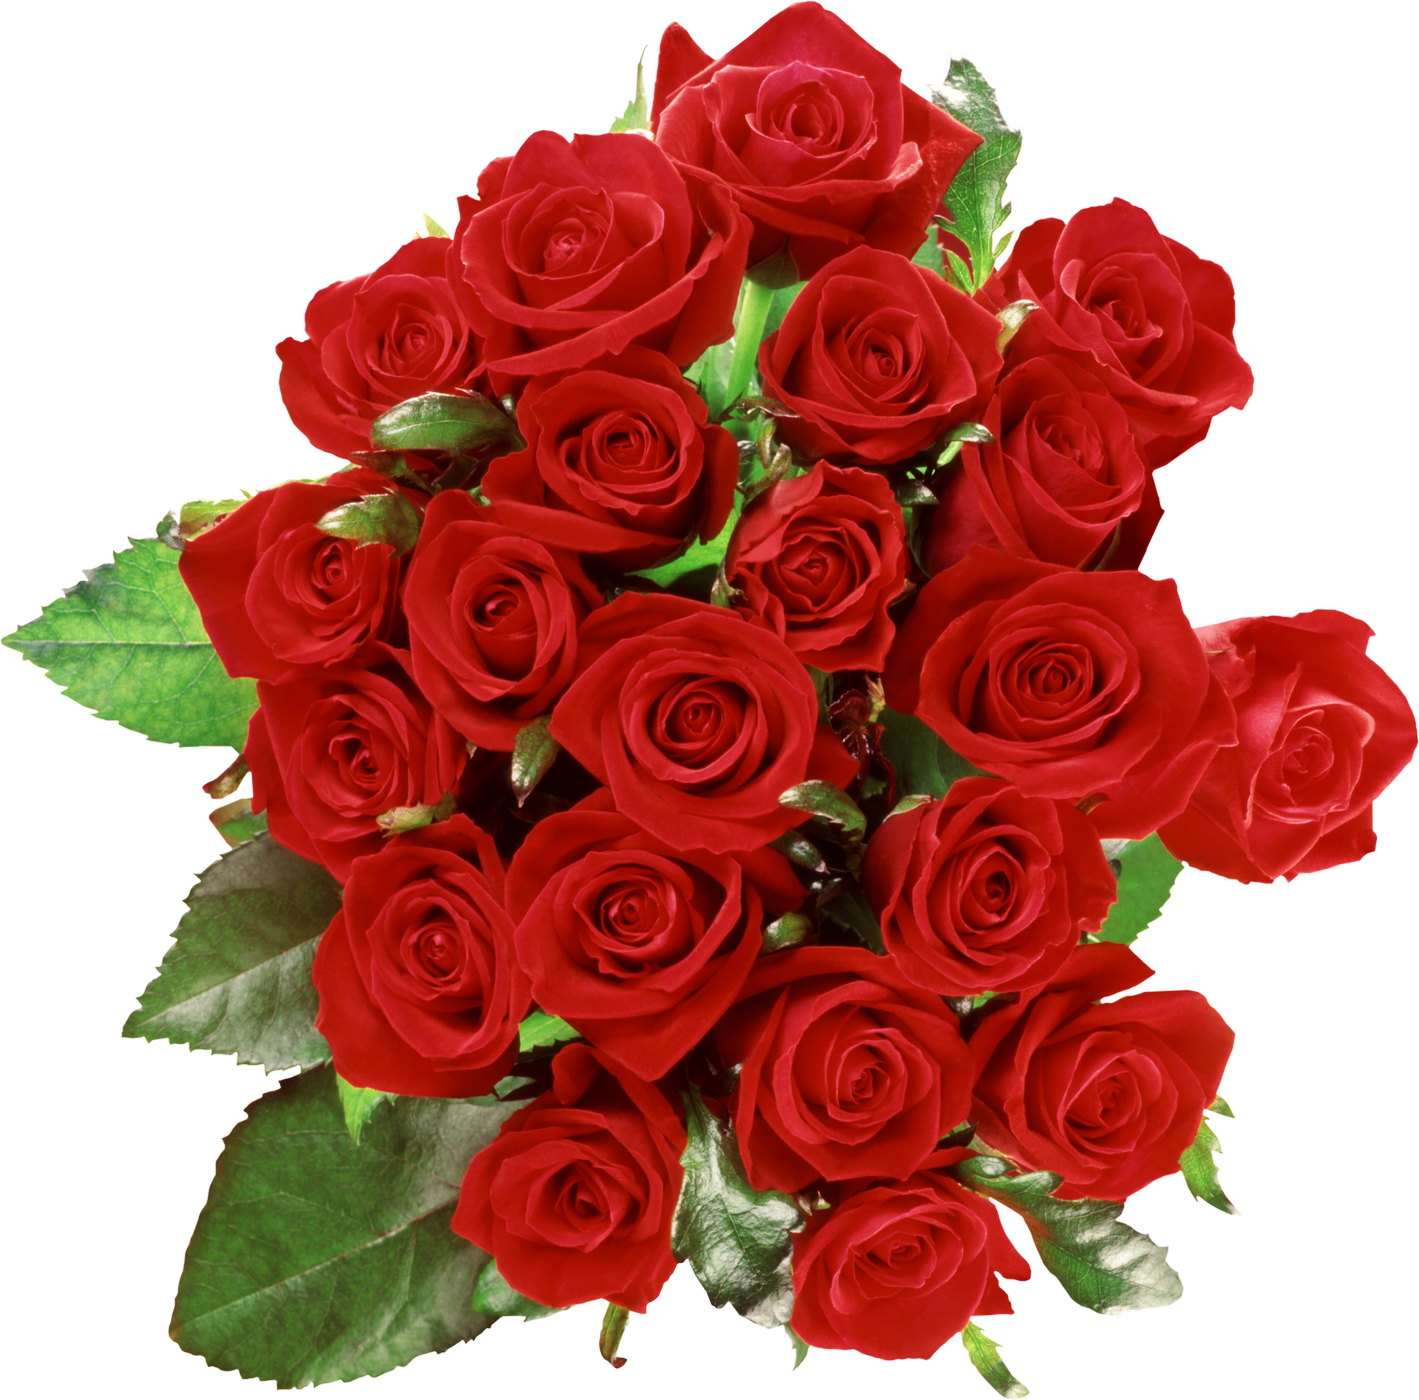 Red Rose Flower Bouquet Png Flower Images Valentines Flowers